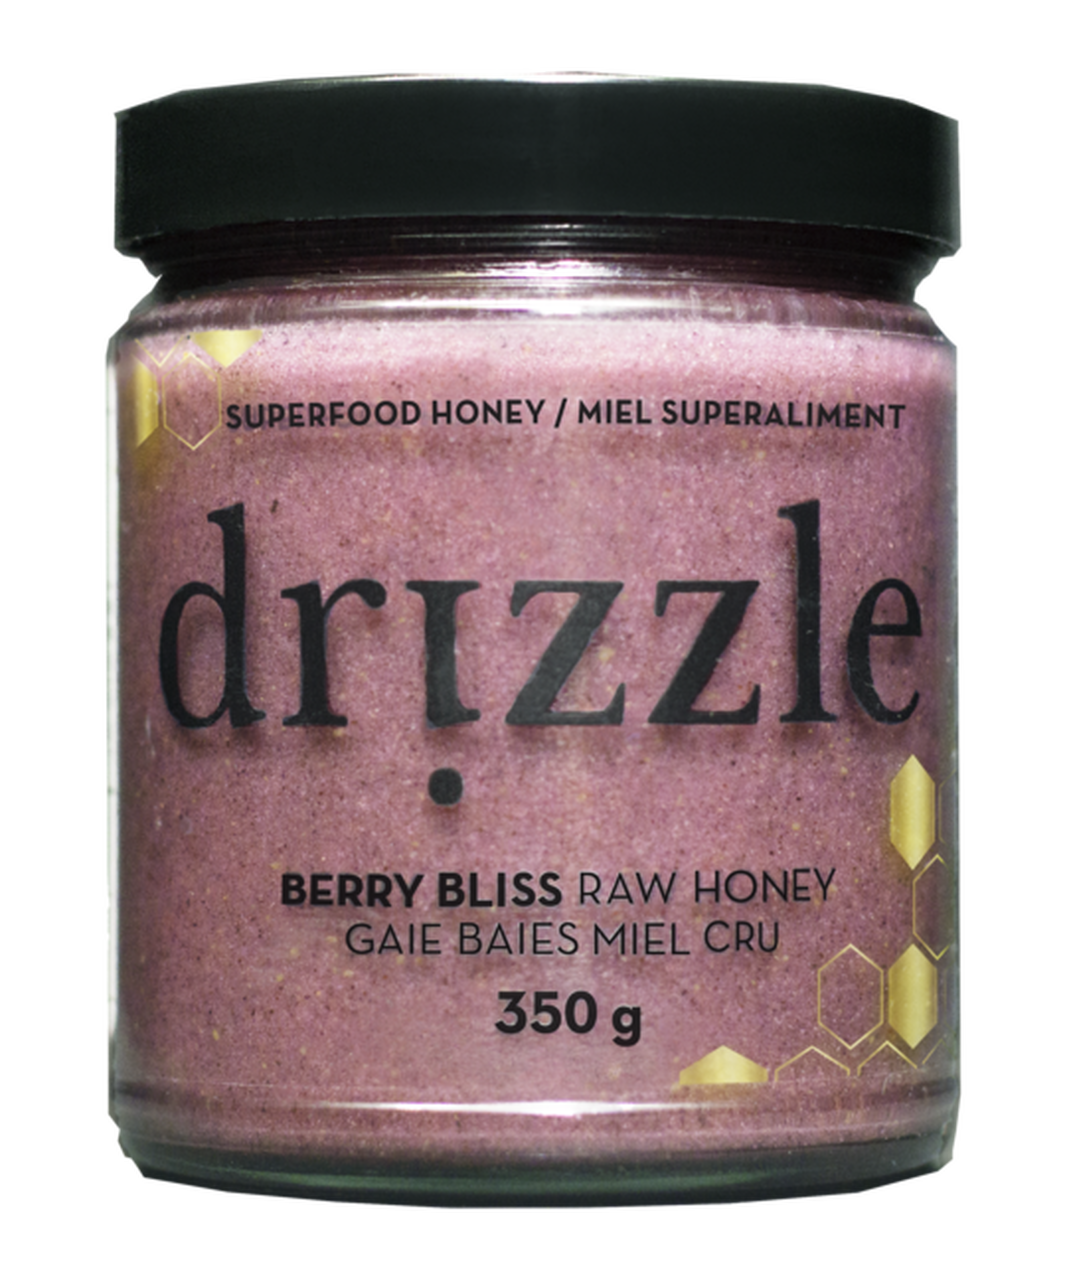 Drizzle Raw Honey - Berry Bliss 350g